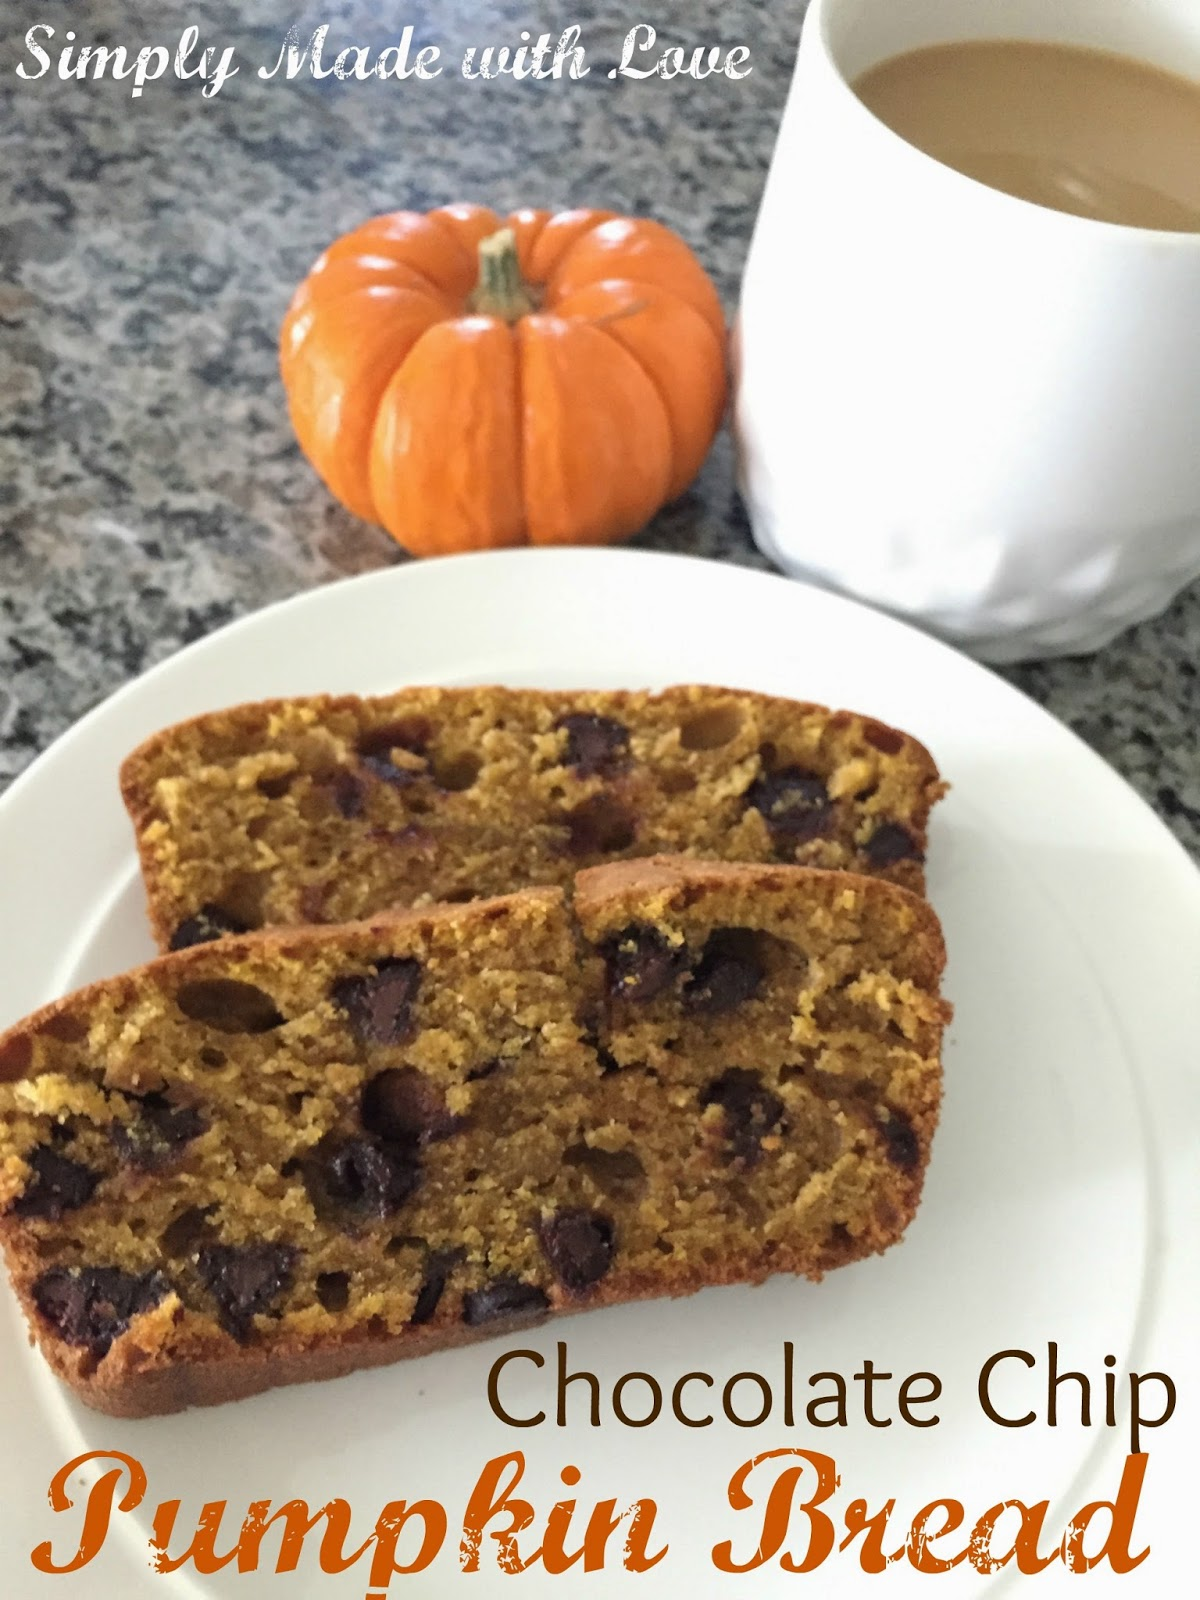 simply made with love: Chocolate Chip Pumpkin Bread